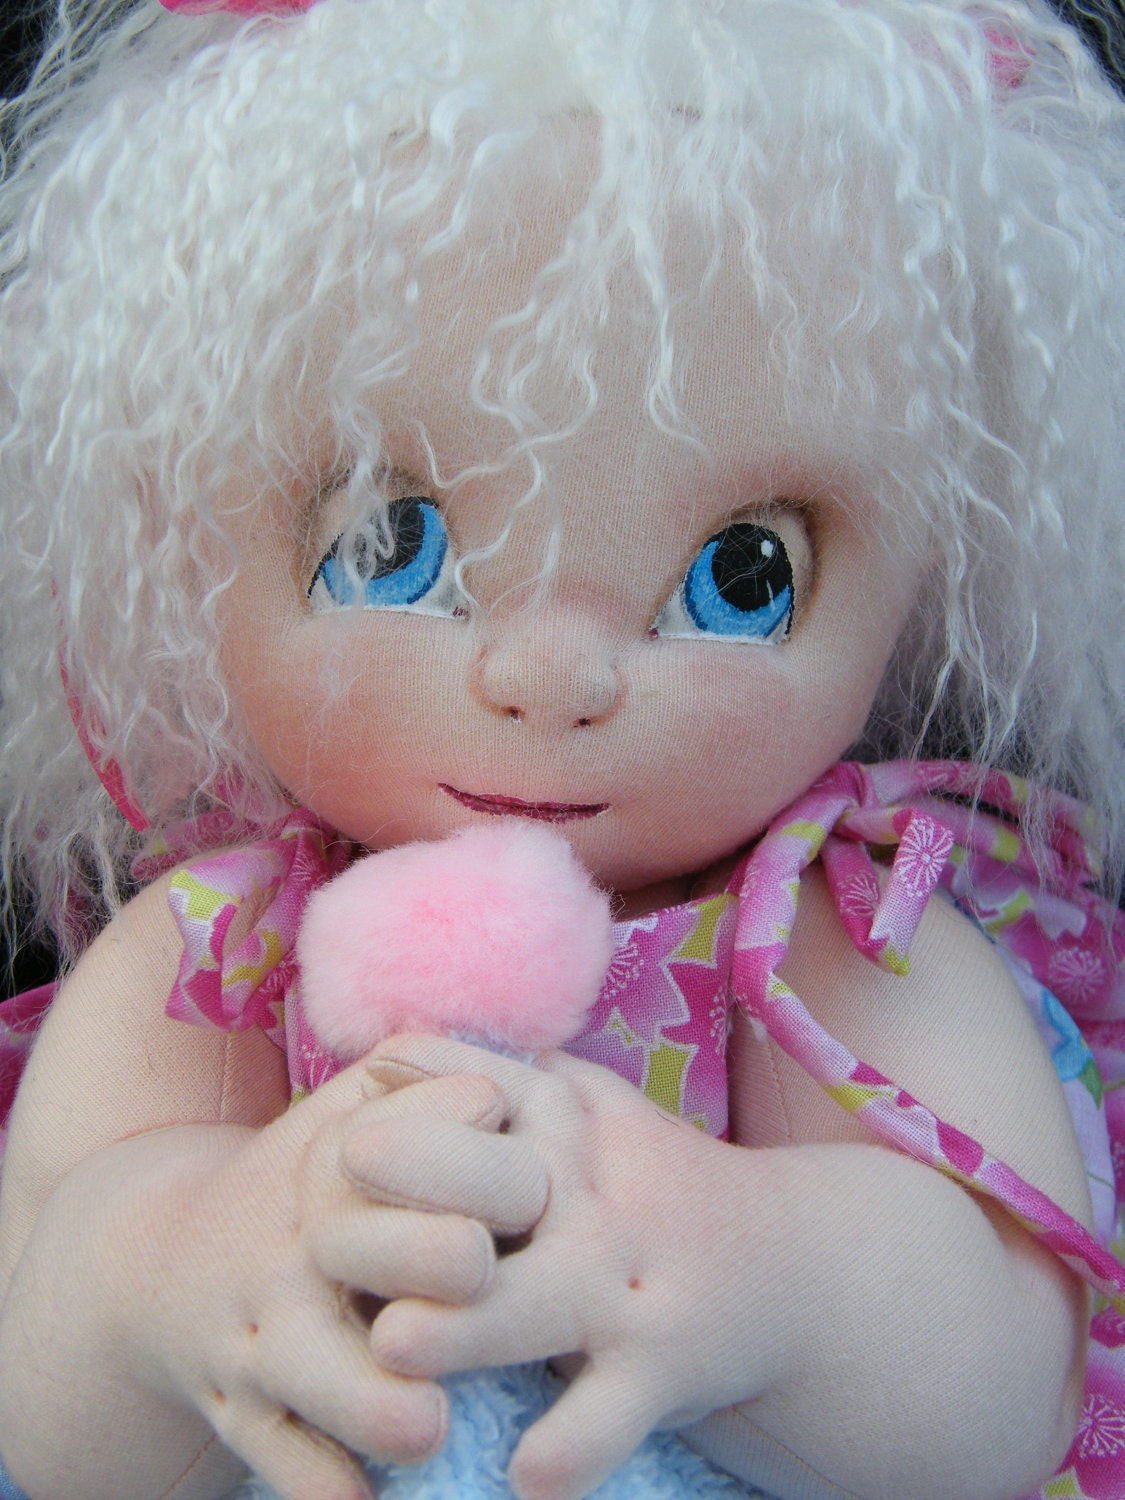 Baby Girl Soft Sculpture / needle sculpted cloth baby doll